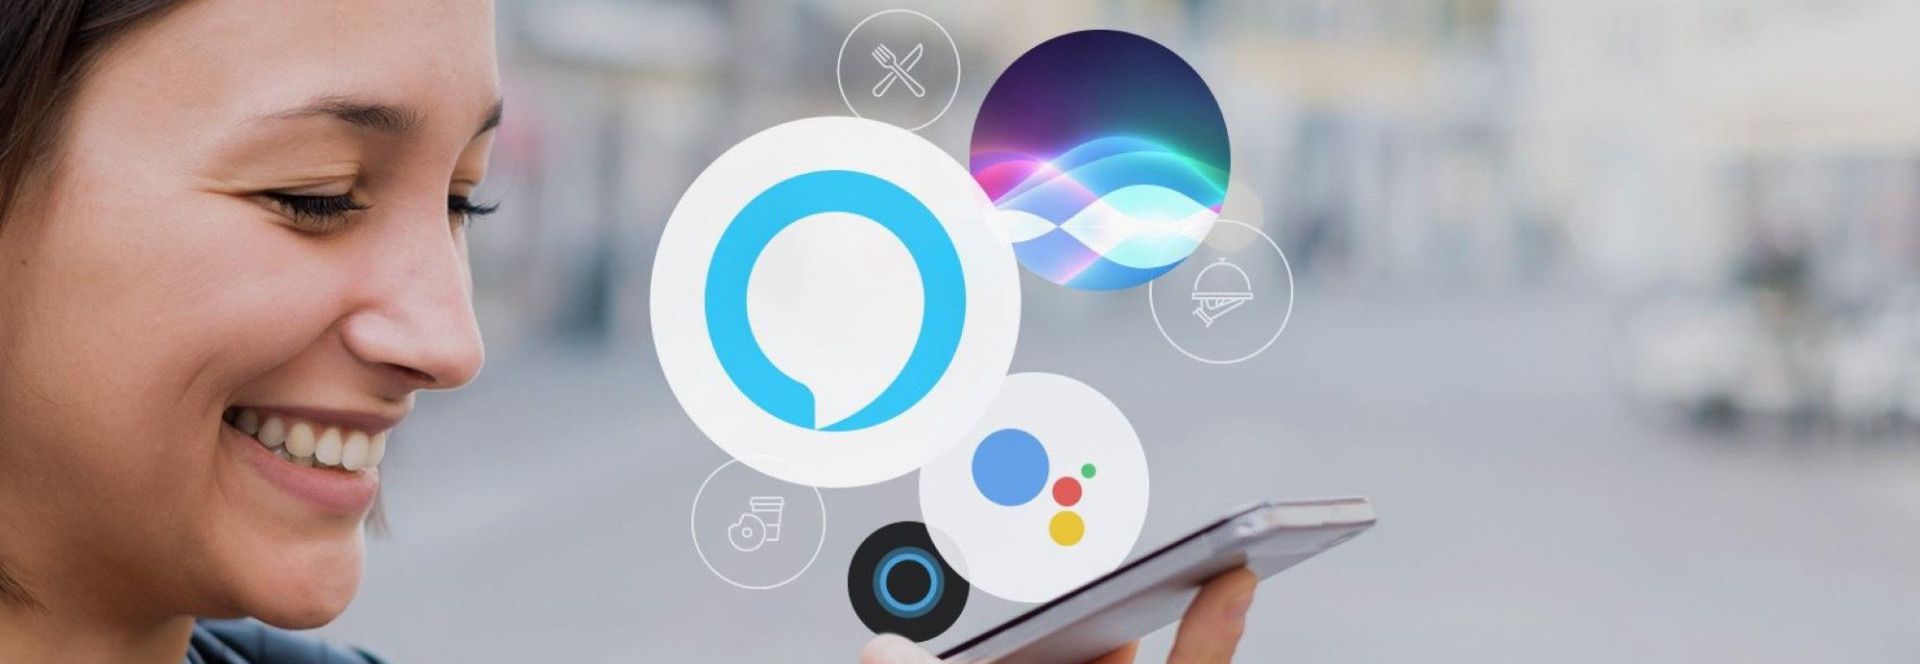 How Marketers Can Use Voice Search and Technology